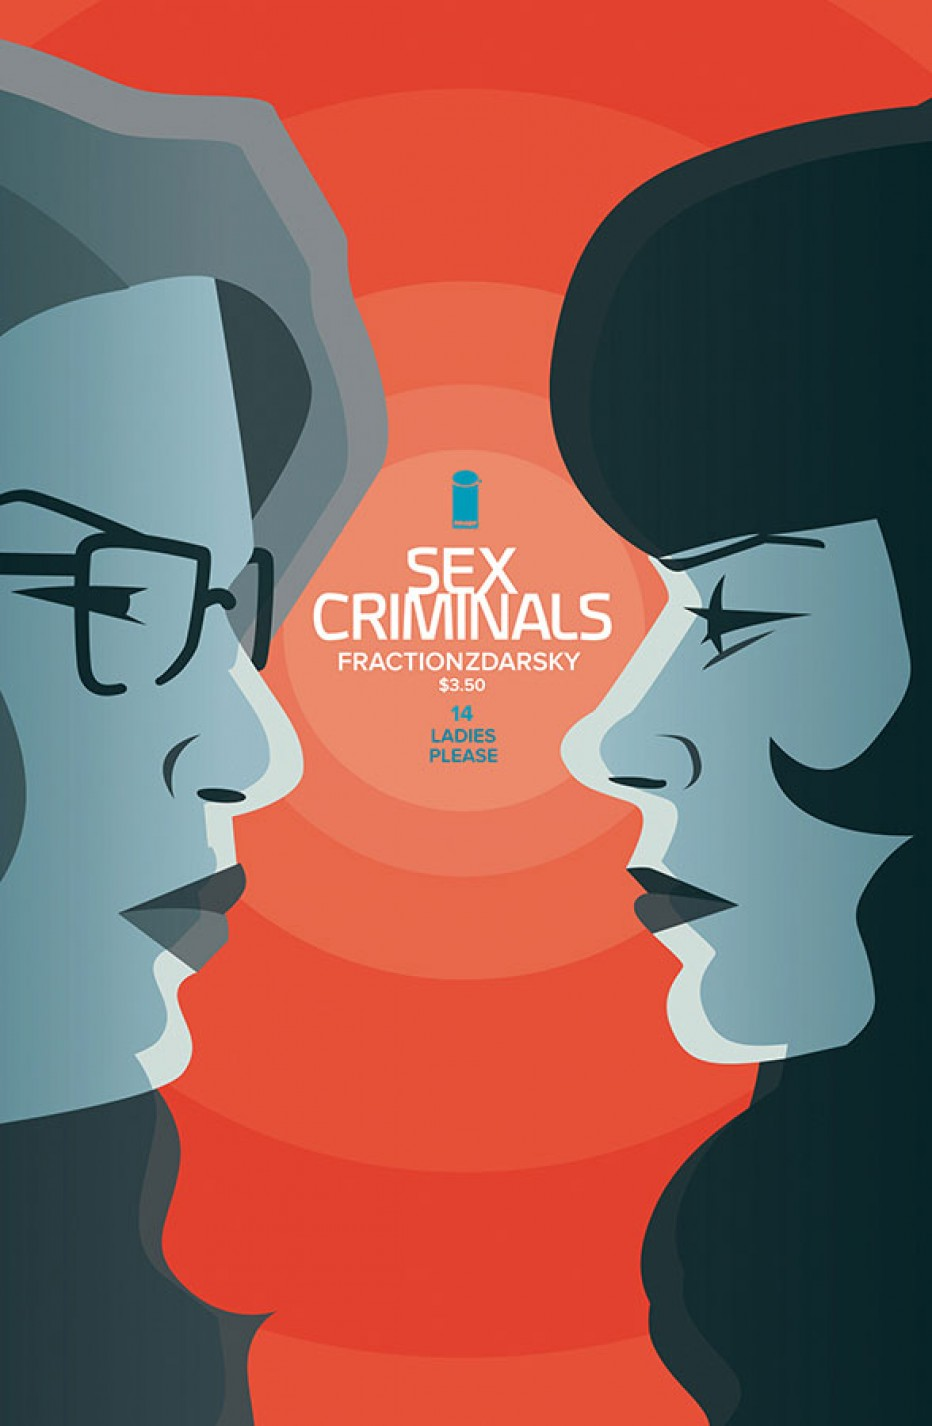 Sex Criminals - Fraction - Zdarsky - Visuels (1)